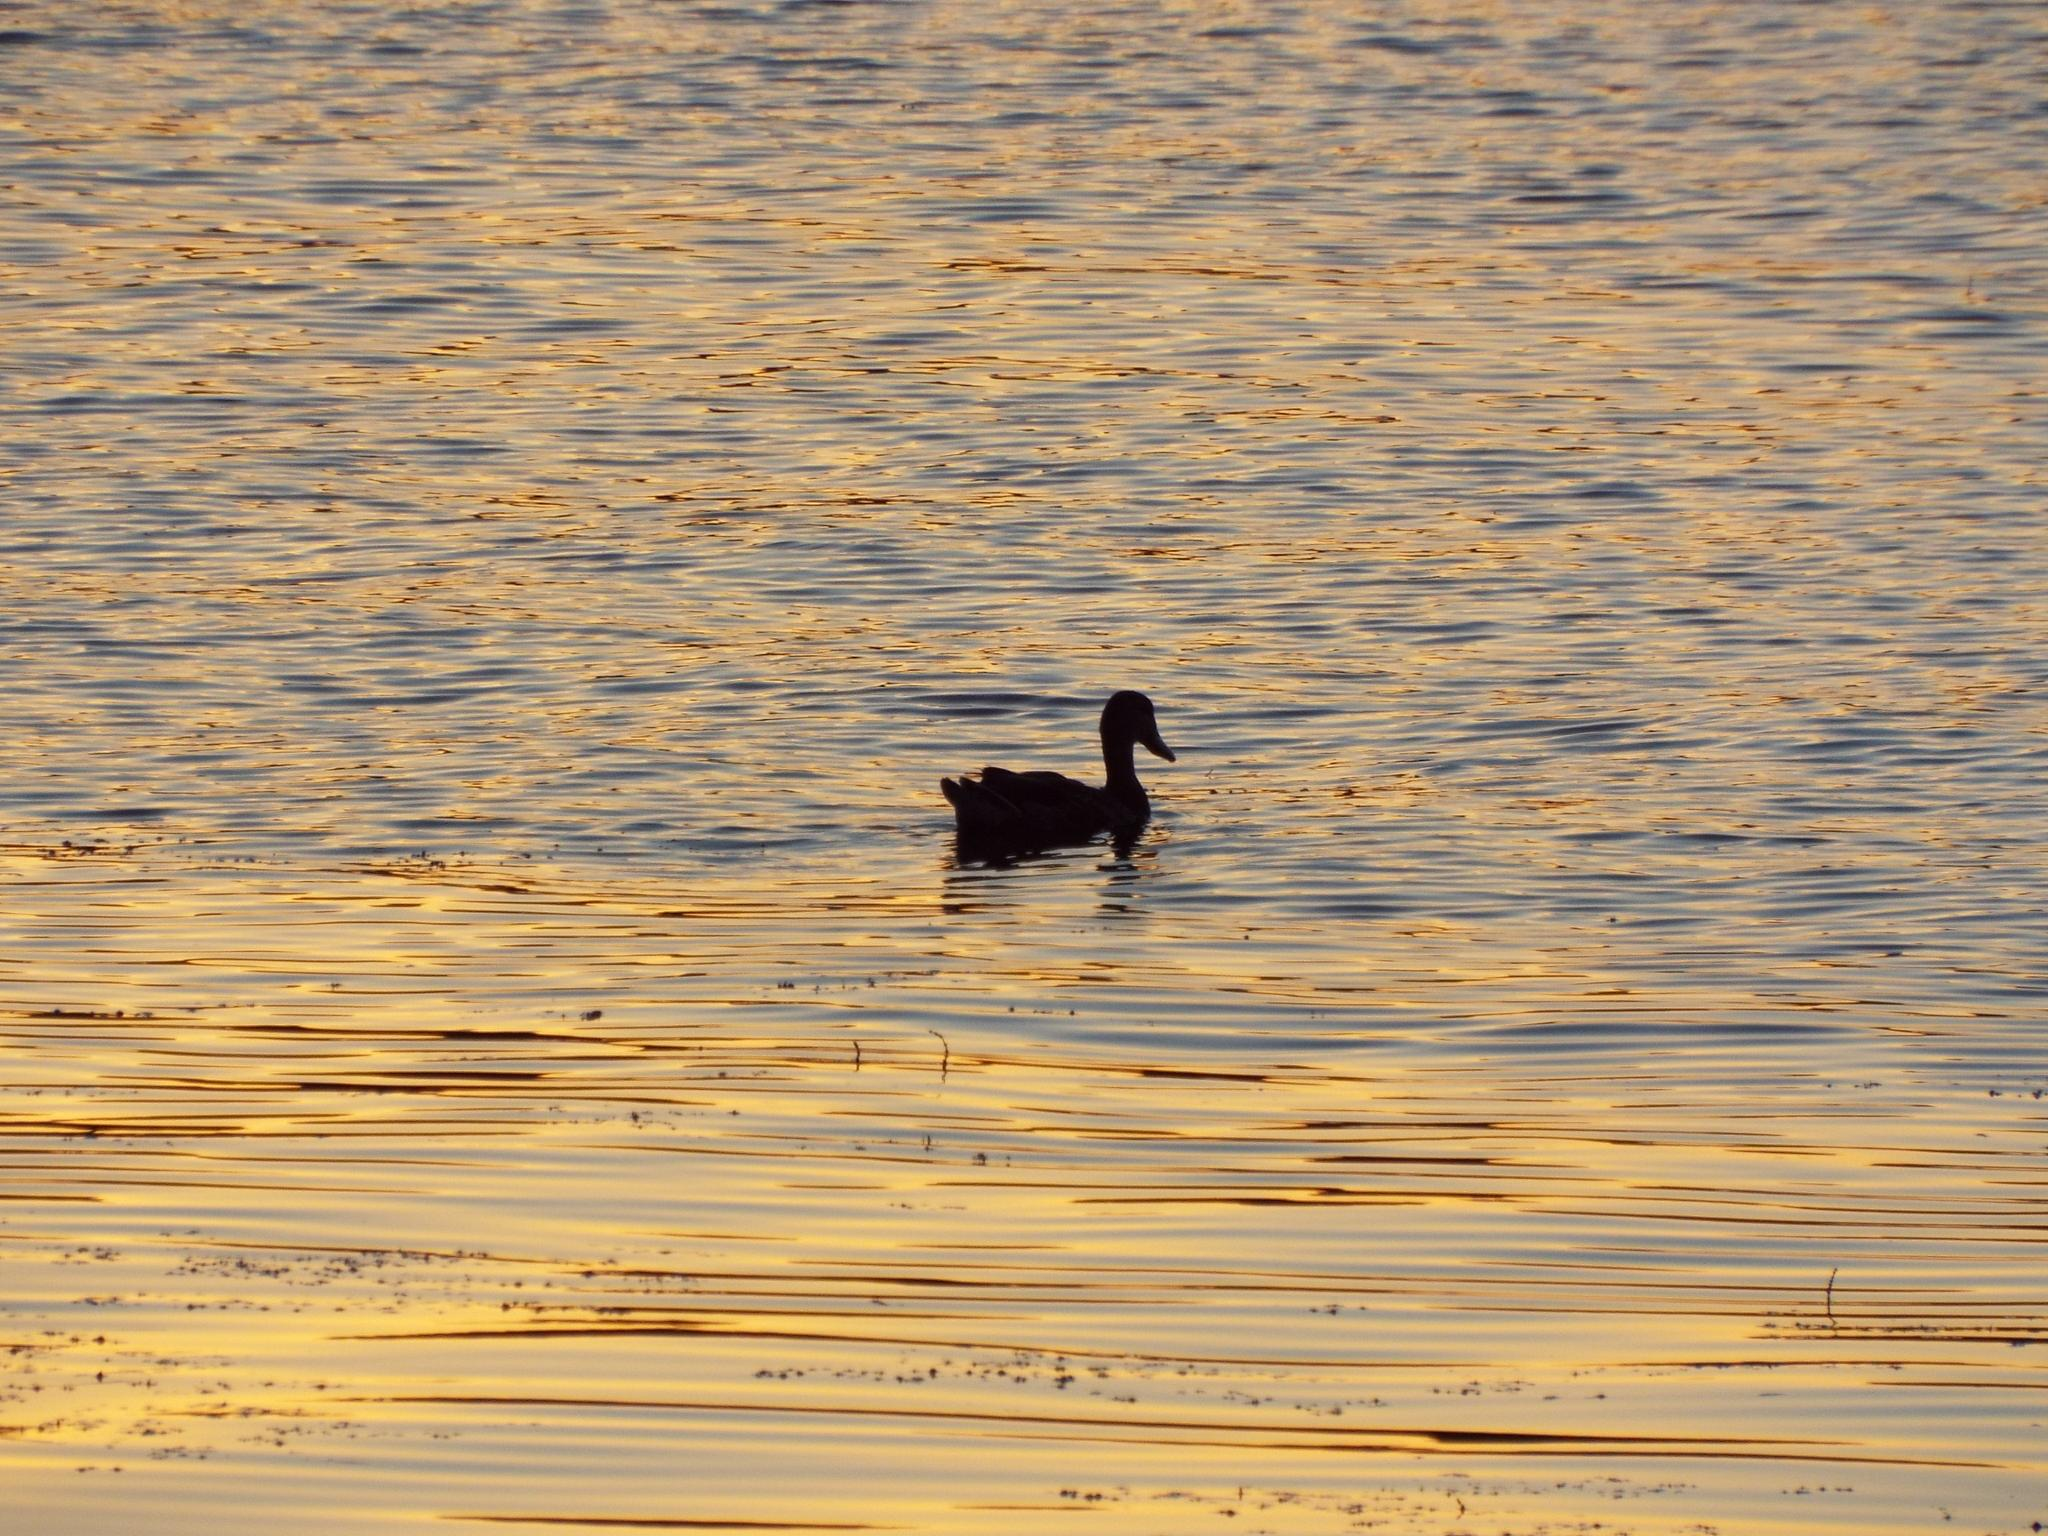 Duck on the water by David F Cupp